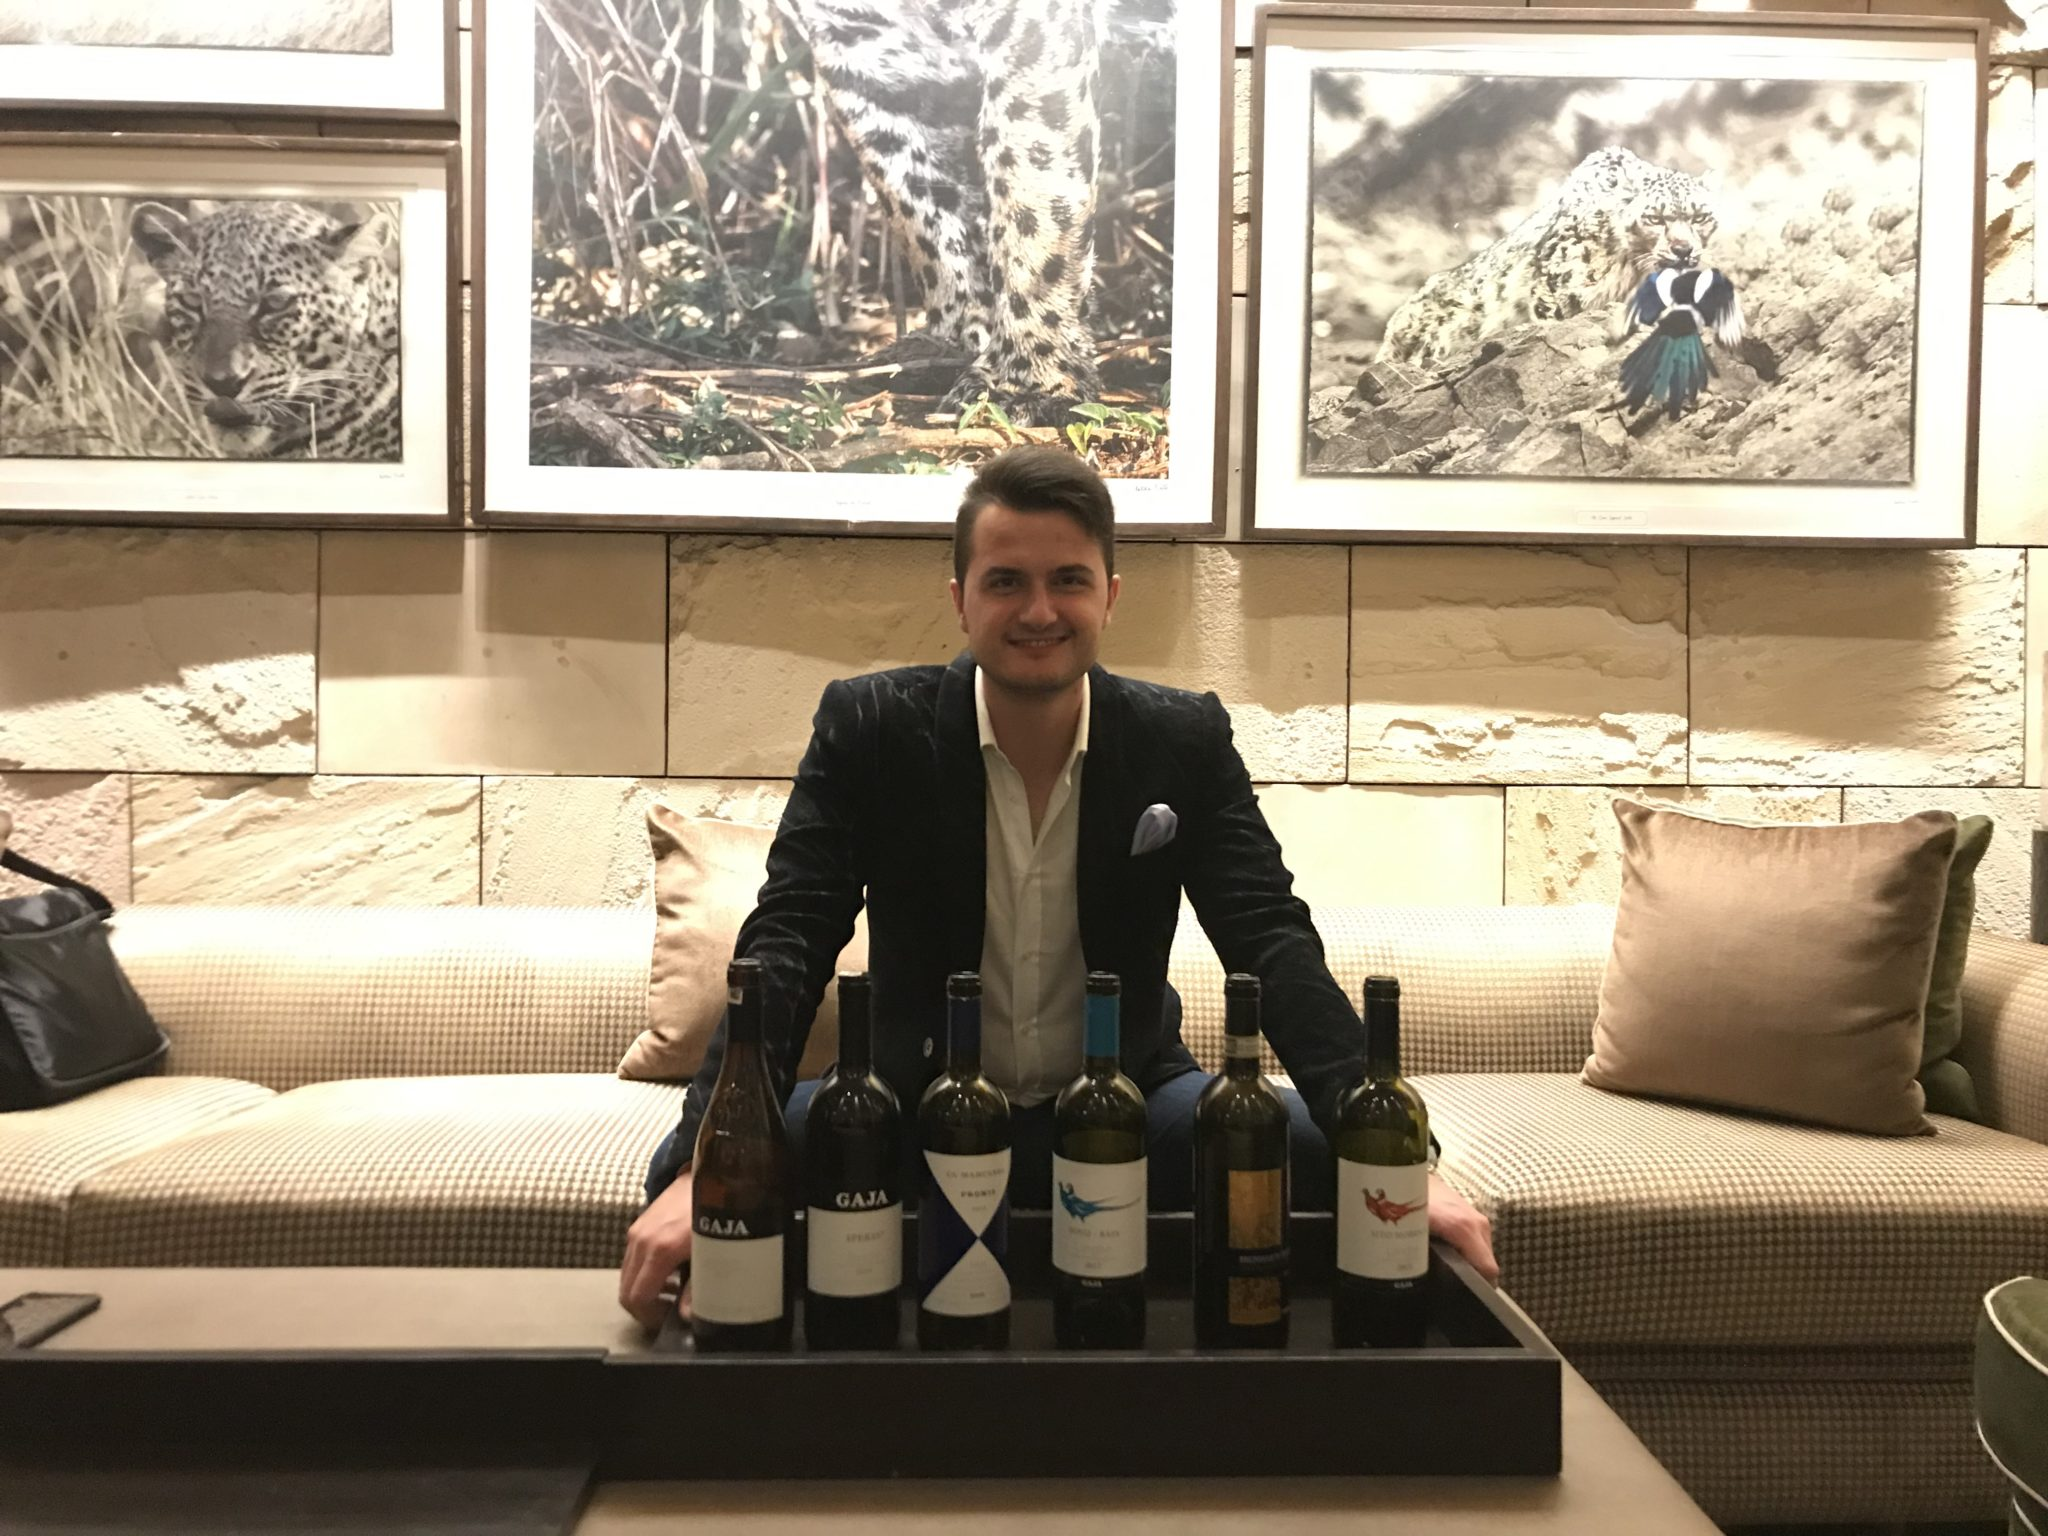 giovanni-gaja-with-gaja-wines